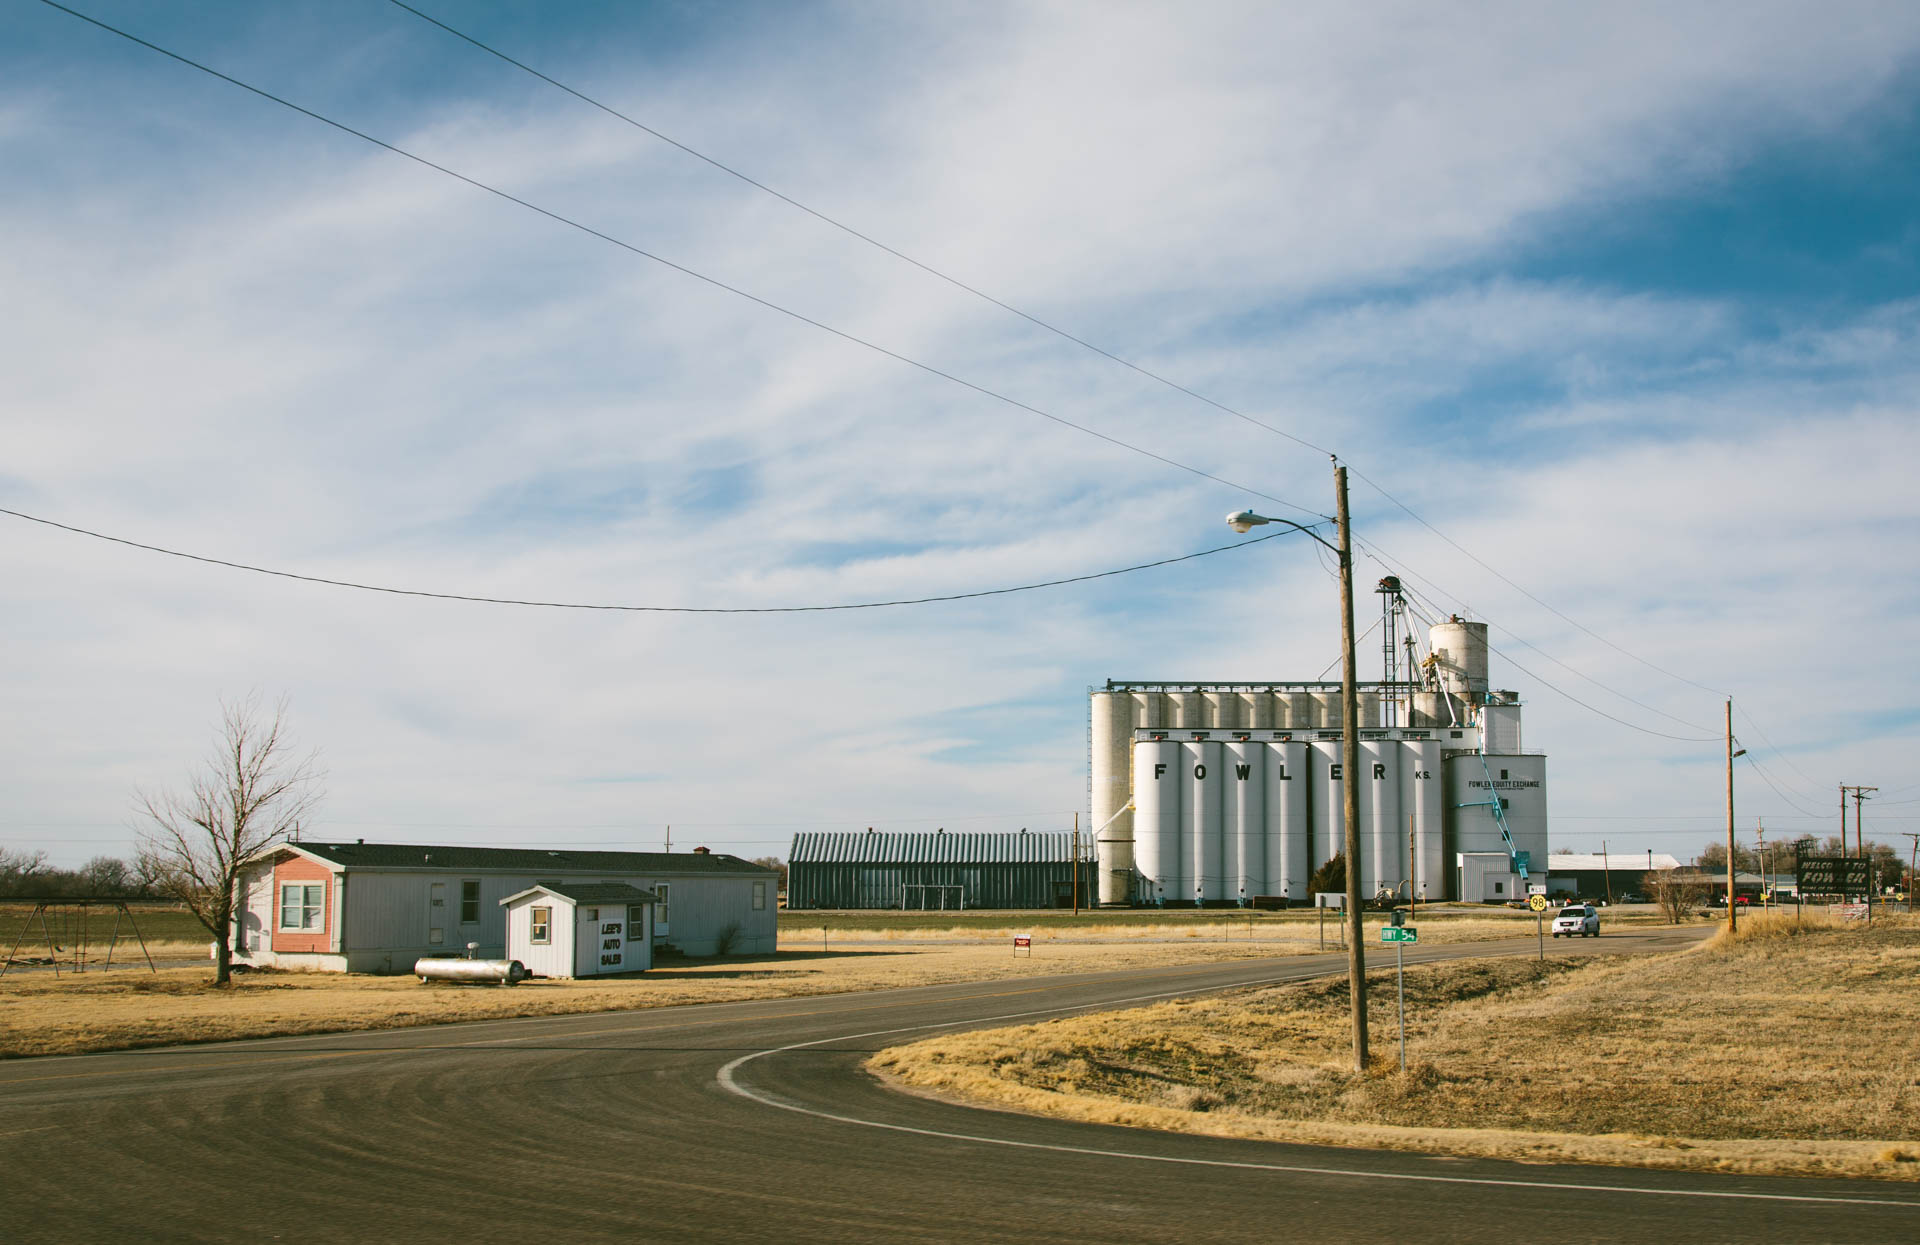 fowler-equity-exchange-grain-elevator-fowler-ks-6883untitled